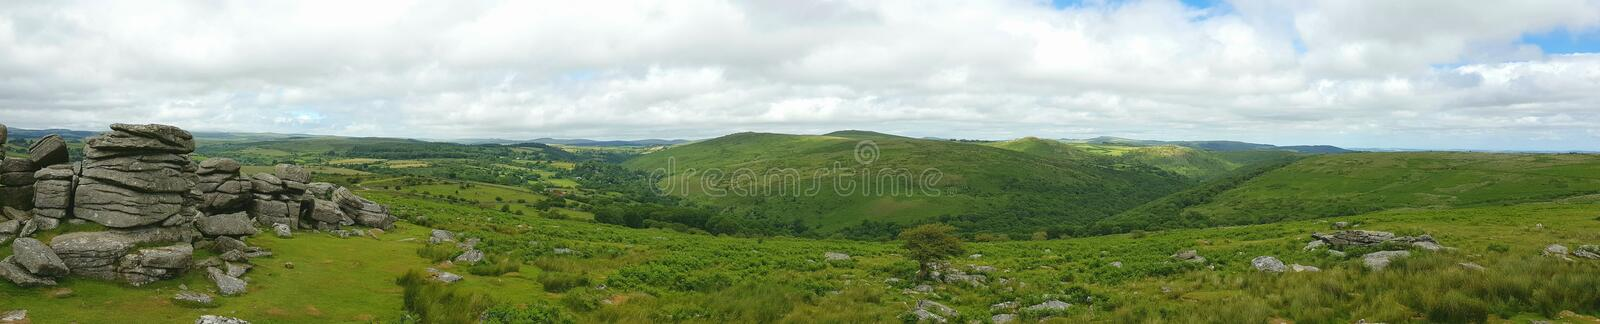 Combestone Tor , Dartmoor National Park, Devon uk. Combestone Tor, Looking towards Yar Tor, Dartmoor National Park, Devon ,uk royalty free stock photo